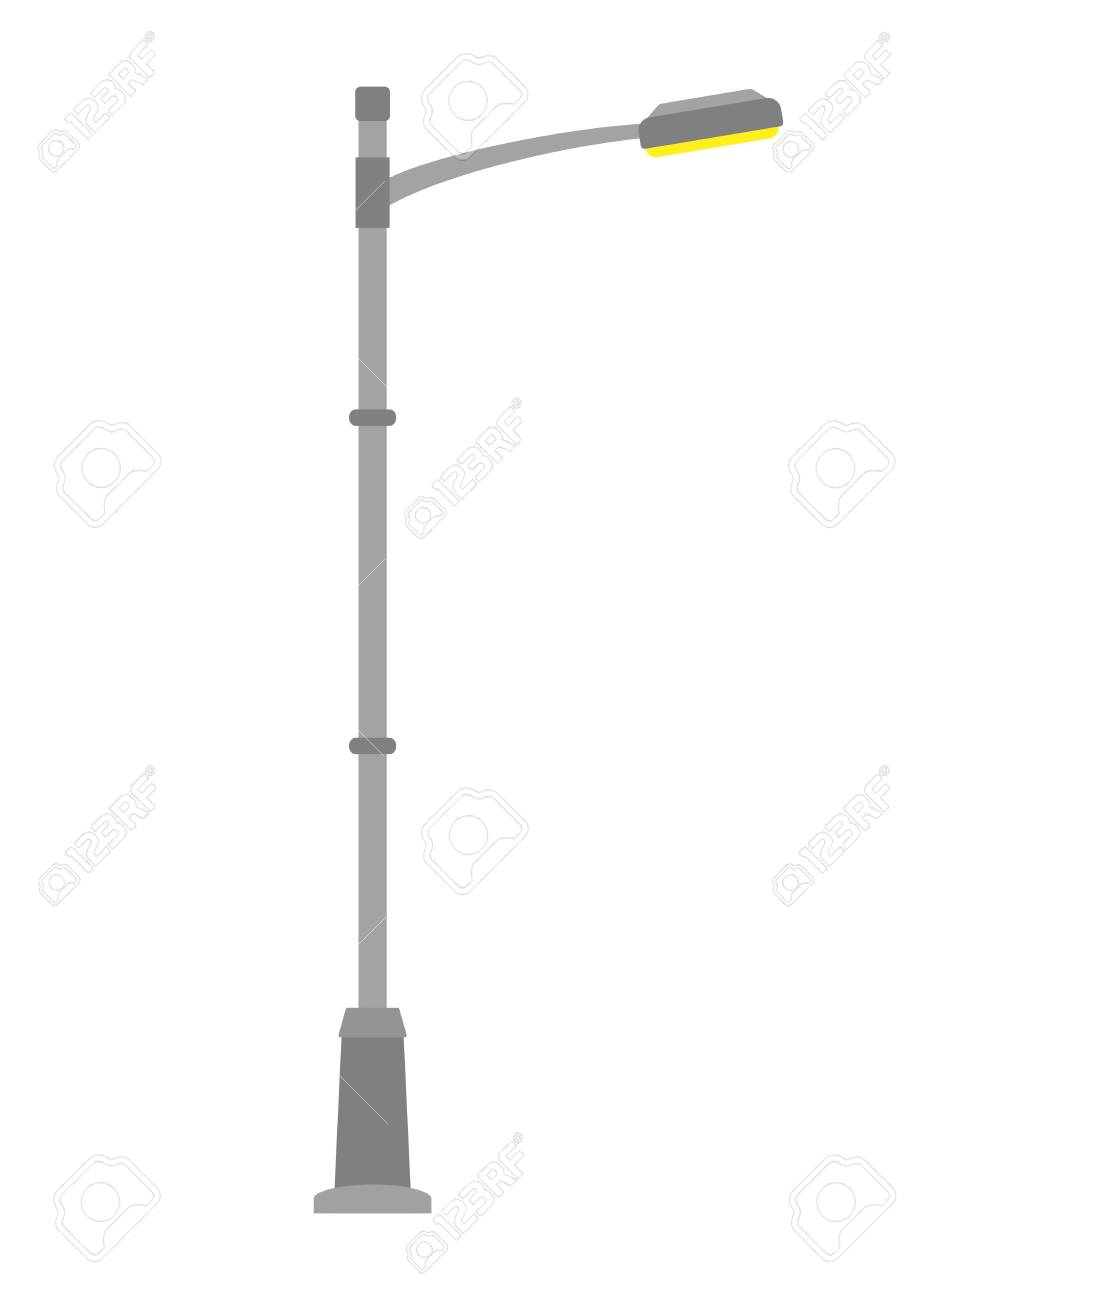 Genial Street Light Isolated On White Background. Outdoor Lamp Post In Flat Style.  Vector Illustration